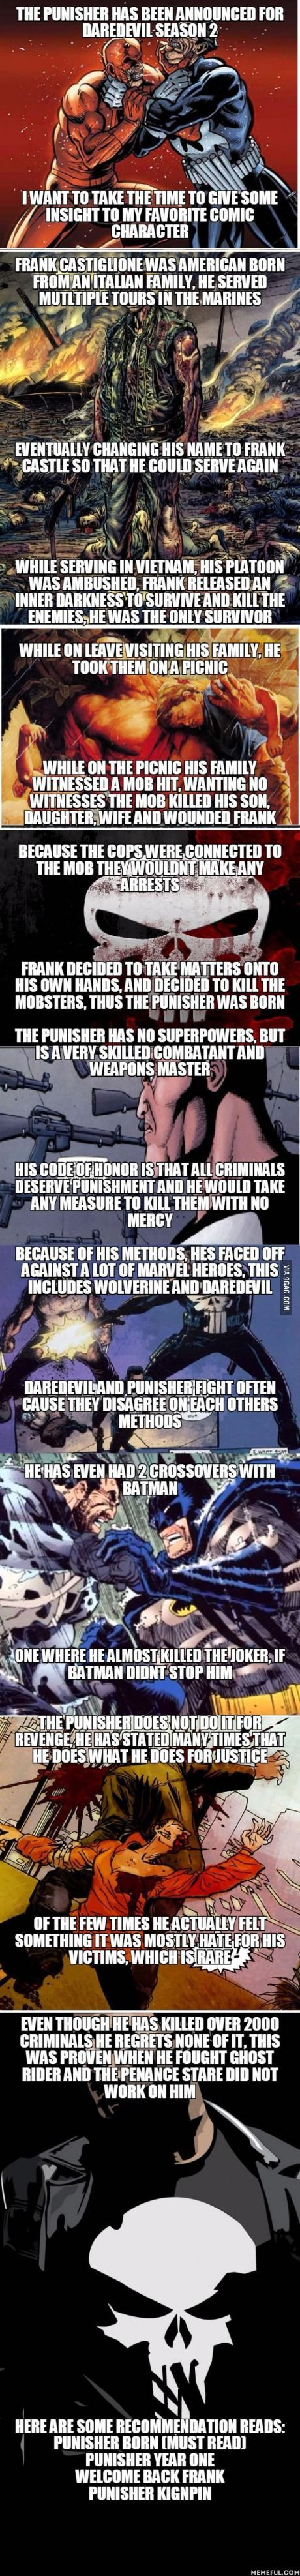 The Punisher has been announced for Daredevil season 2, I made a short history to inform people on this great character